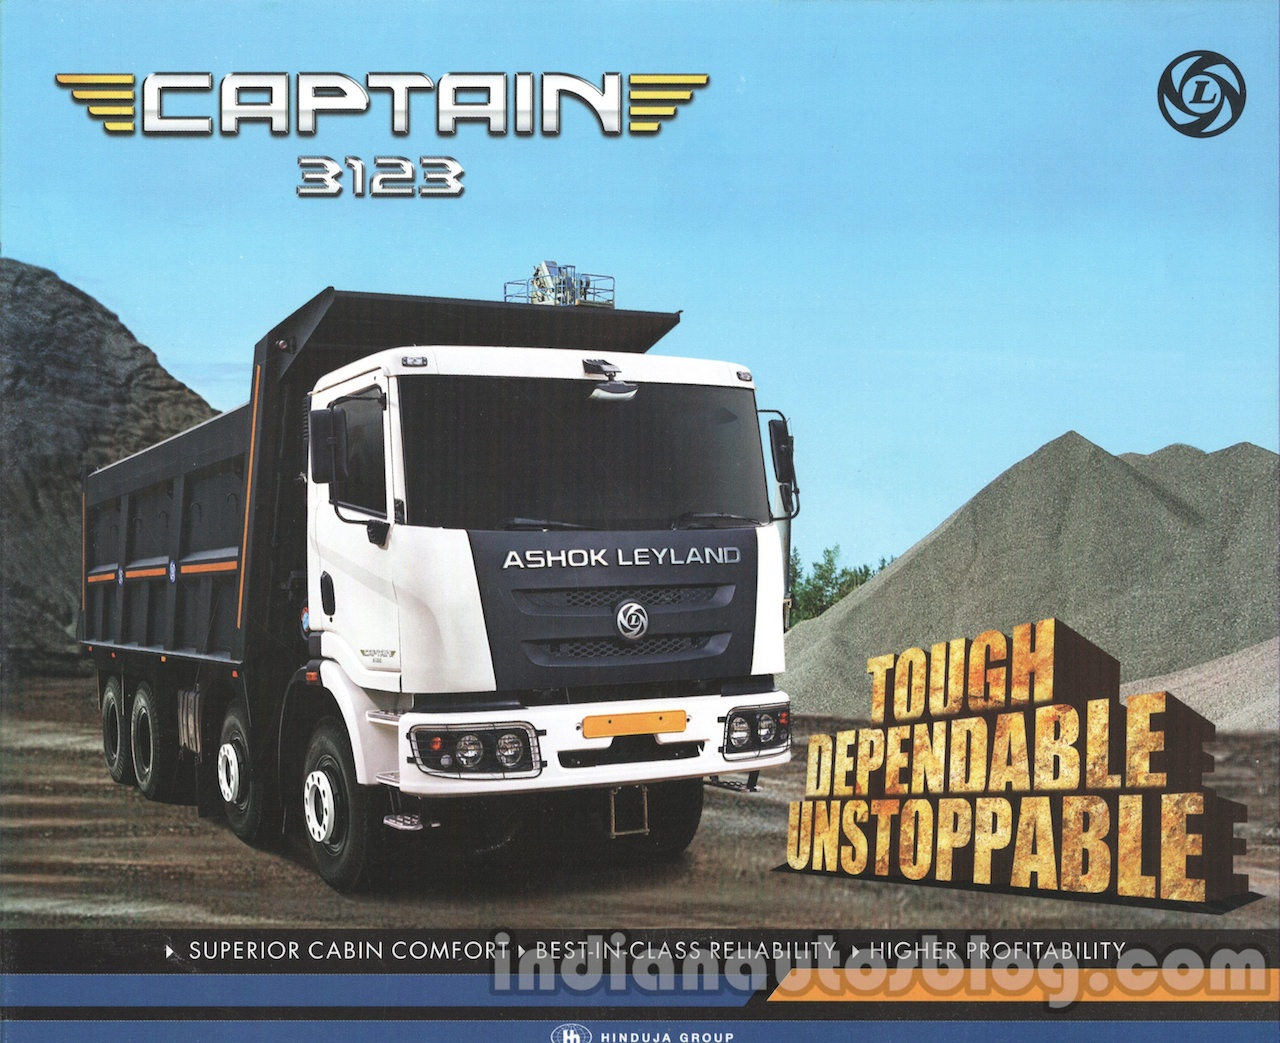 annual report ashok leyland According to the annual report, ashok leyland continues to be the market leader in the bus segment in bangladesh, sri lanka and in a few countries in west asia.